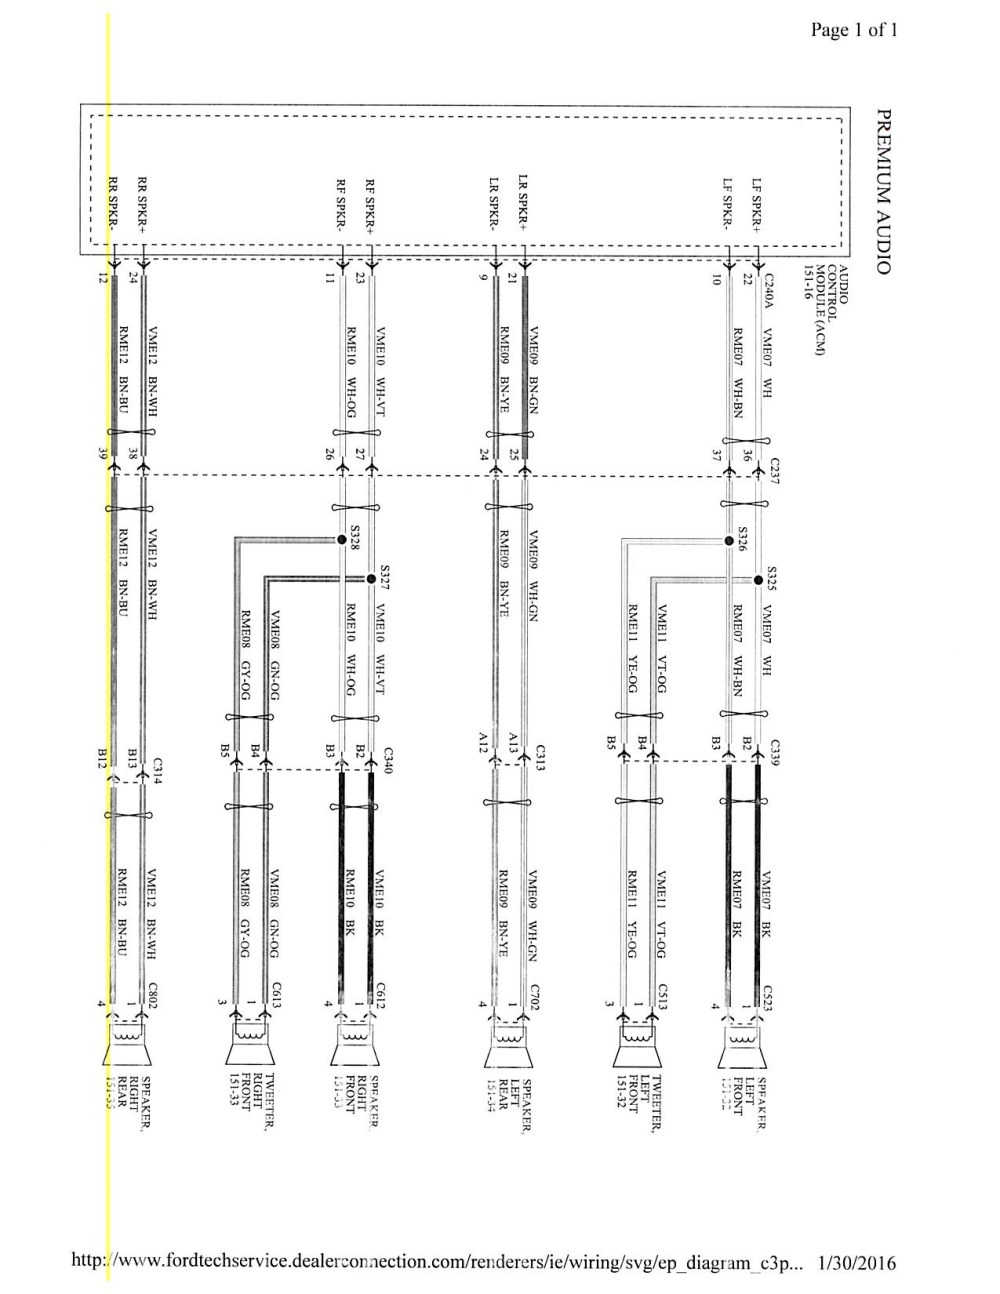 medium resolution of wiring diagram for 2014 ford focus wiring diagram new ford focus fuse box diagram 2010 cigarette lighter 2010 ford focus fuse box diagram